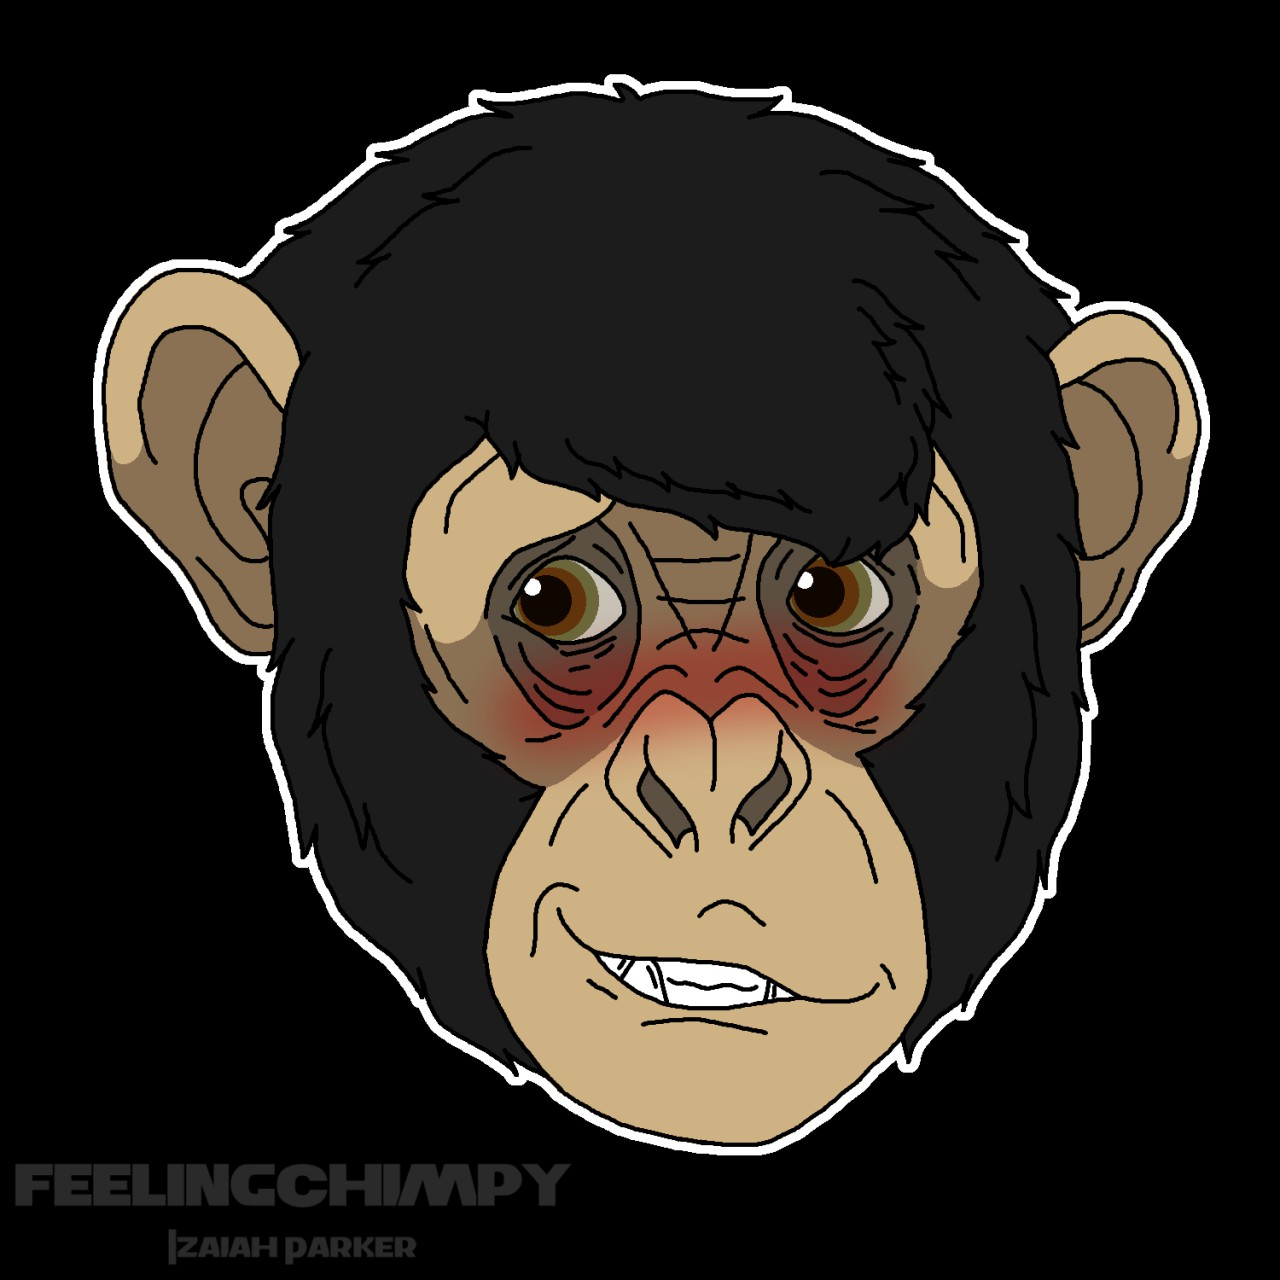 1554706732.feelingchimpy_hoots_shy_sticker